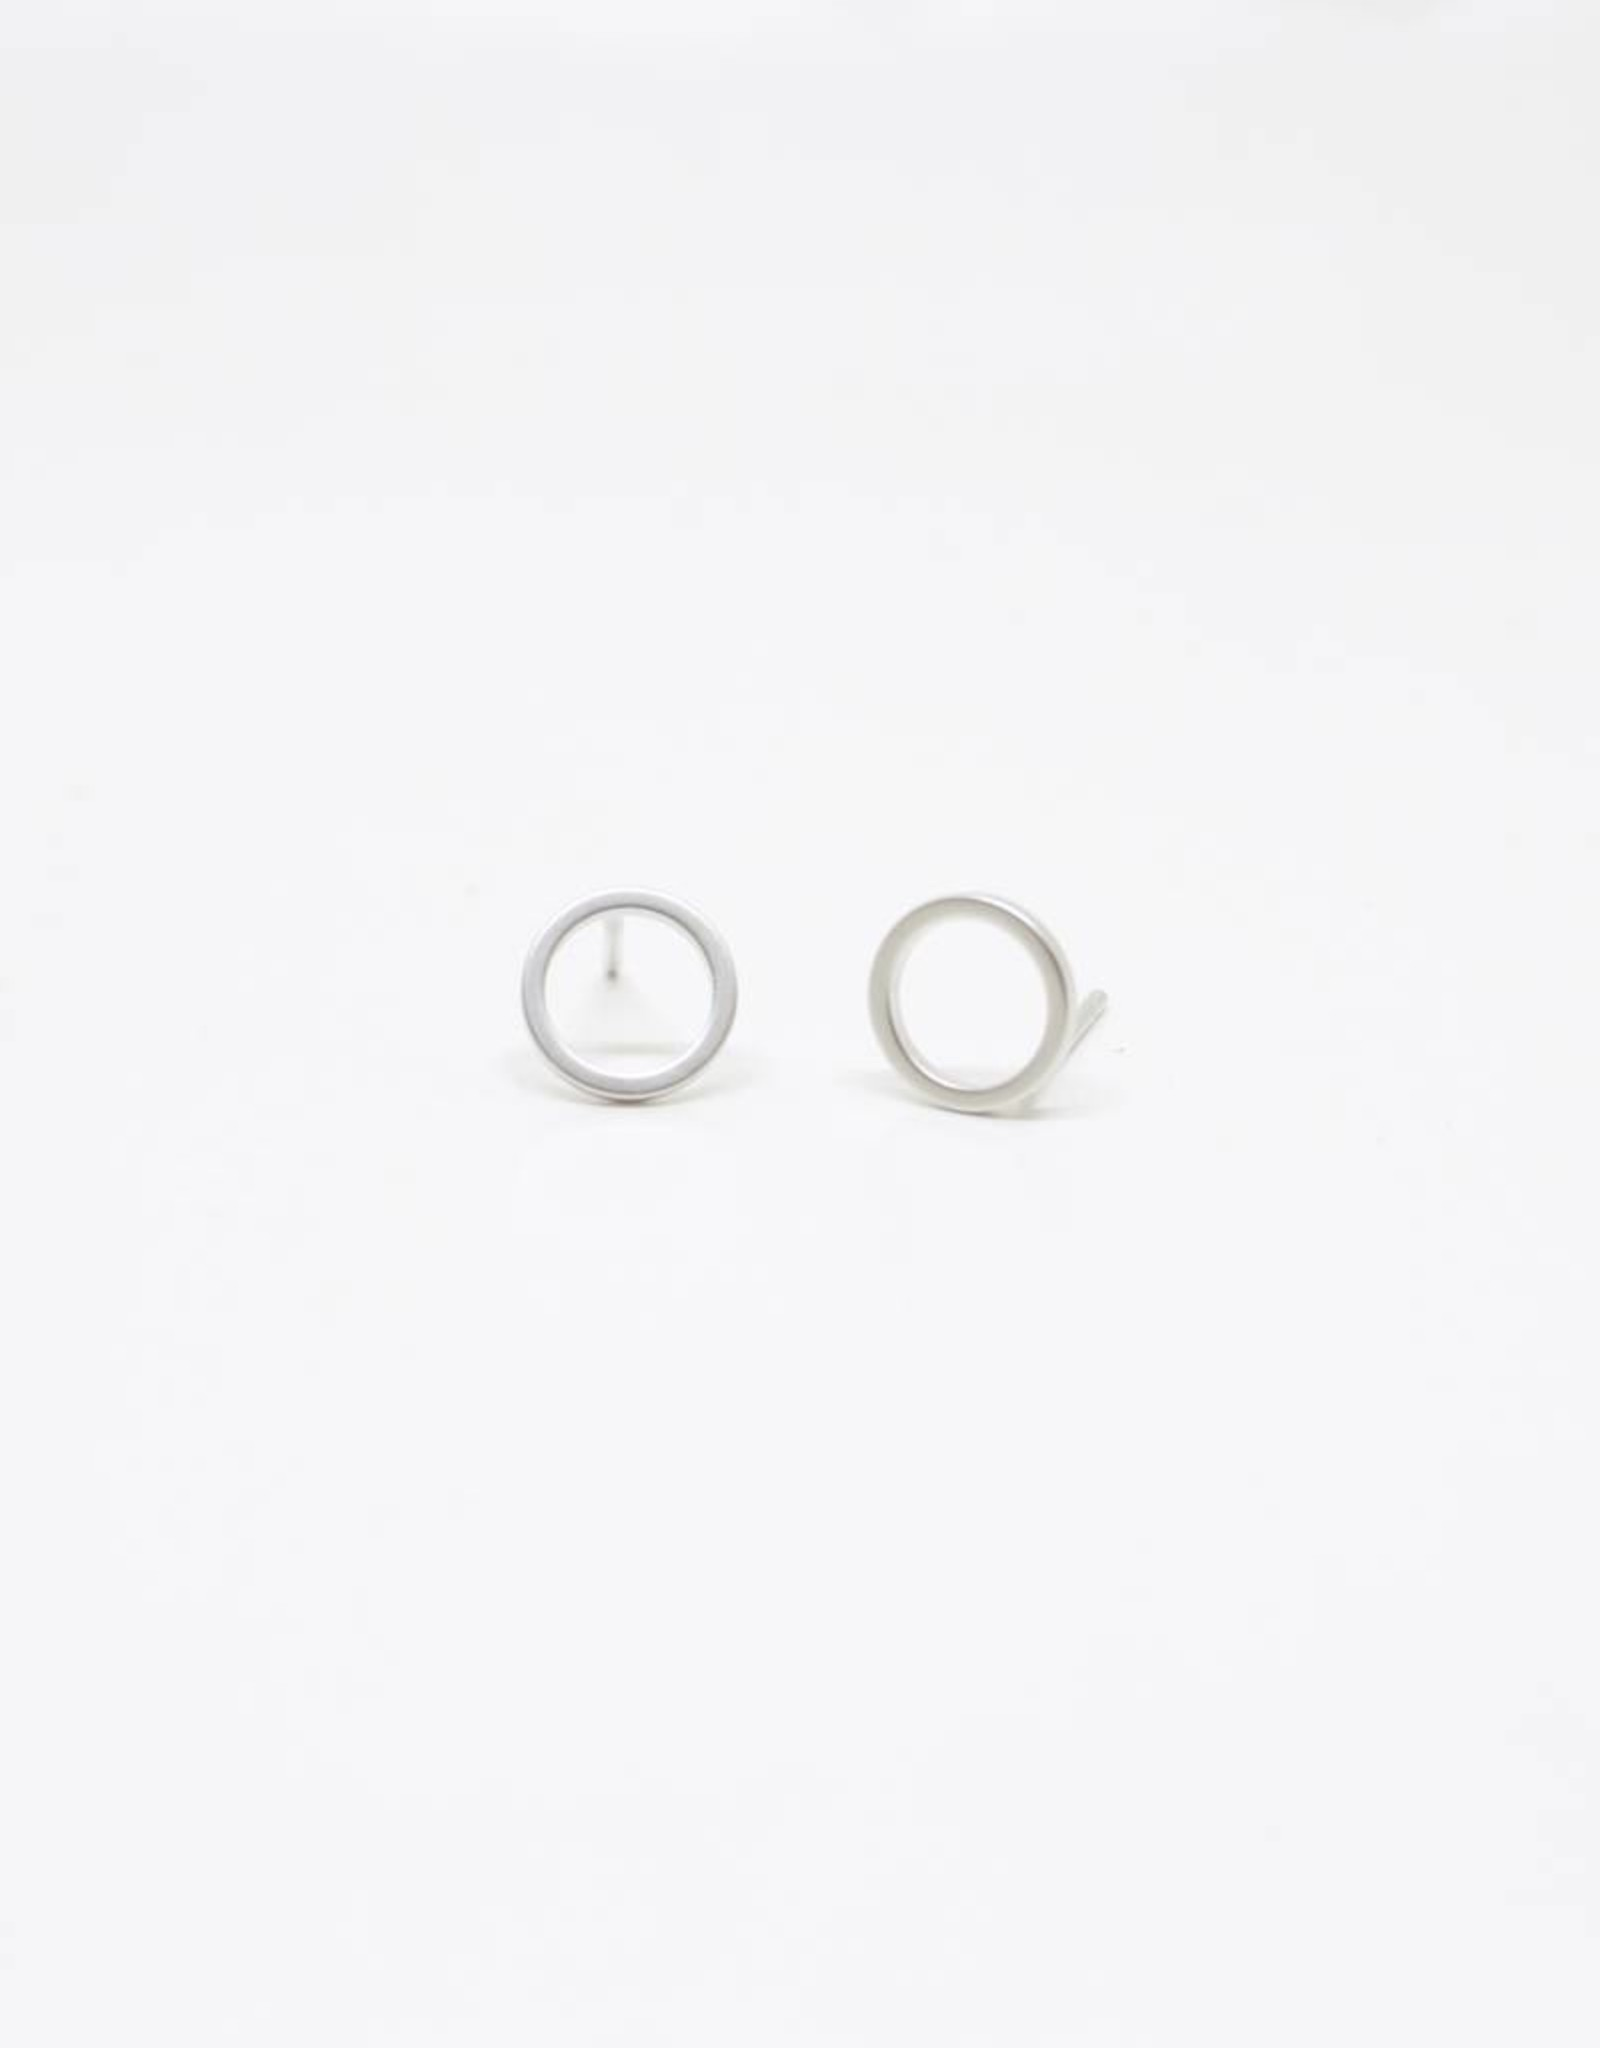 Standout Boutique Circle Stud Earrings - Circle